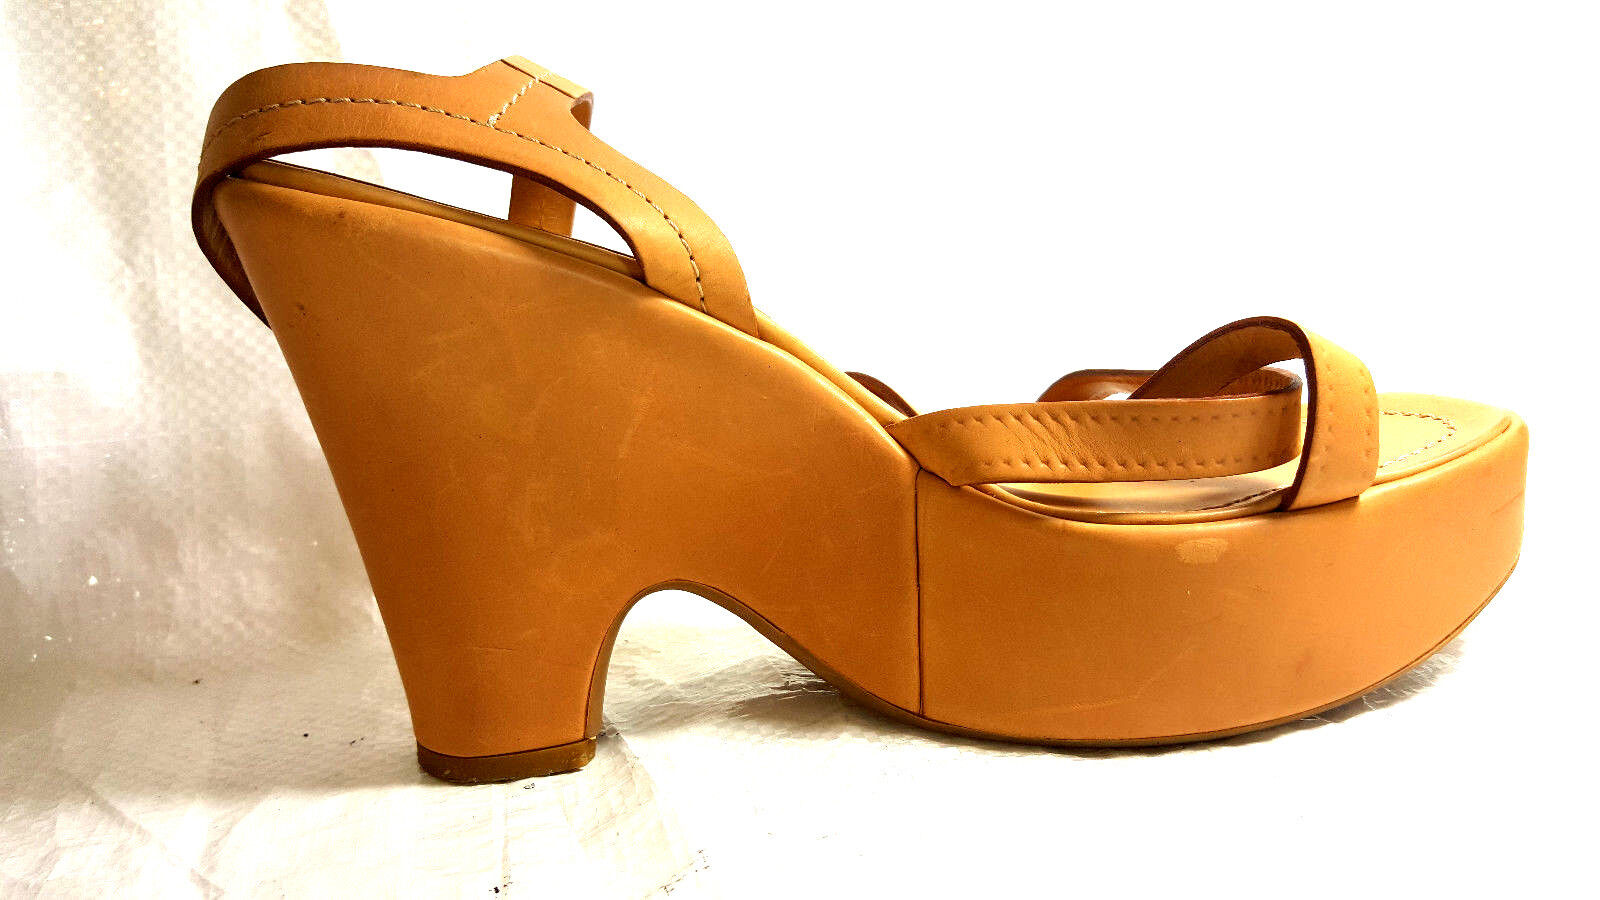 Prada Women Wedge Sandals ankle strap 10M  EU EU EU 40.5 Tan Saddle  leather shoes 2b916a